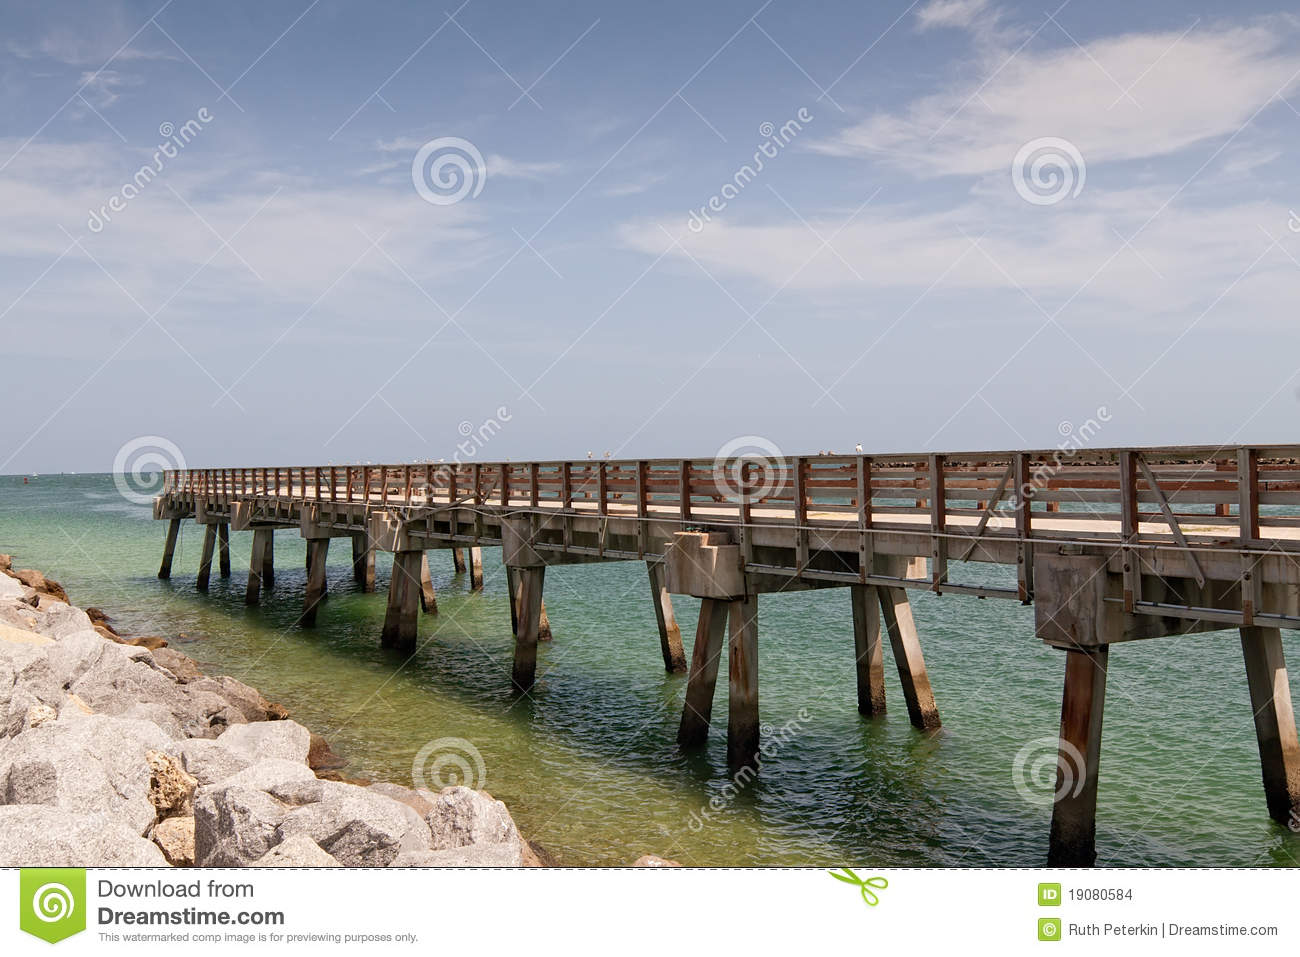 boardwalk in south beach, miami stock images - image: 19080584